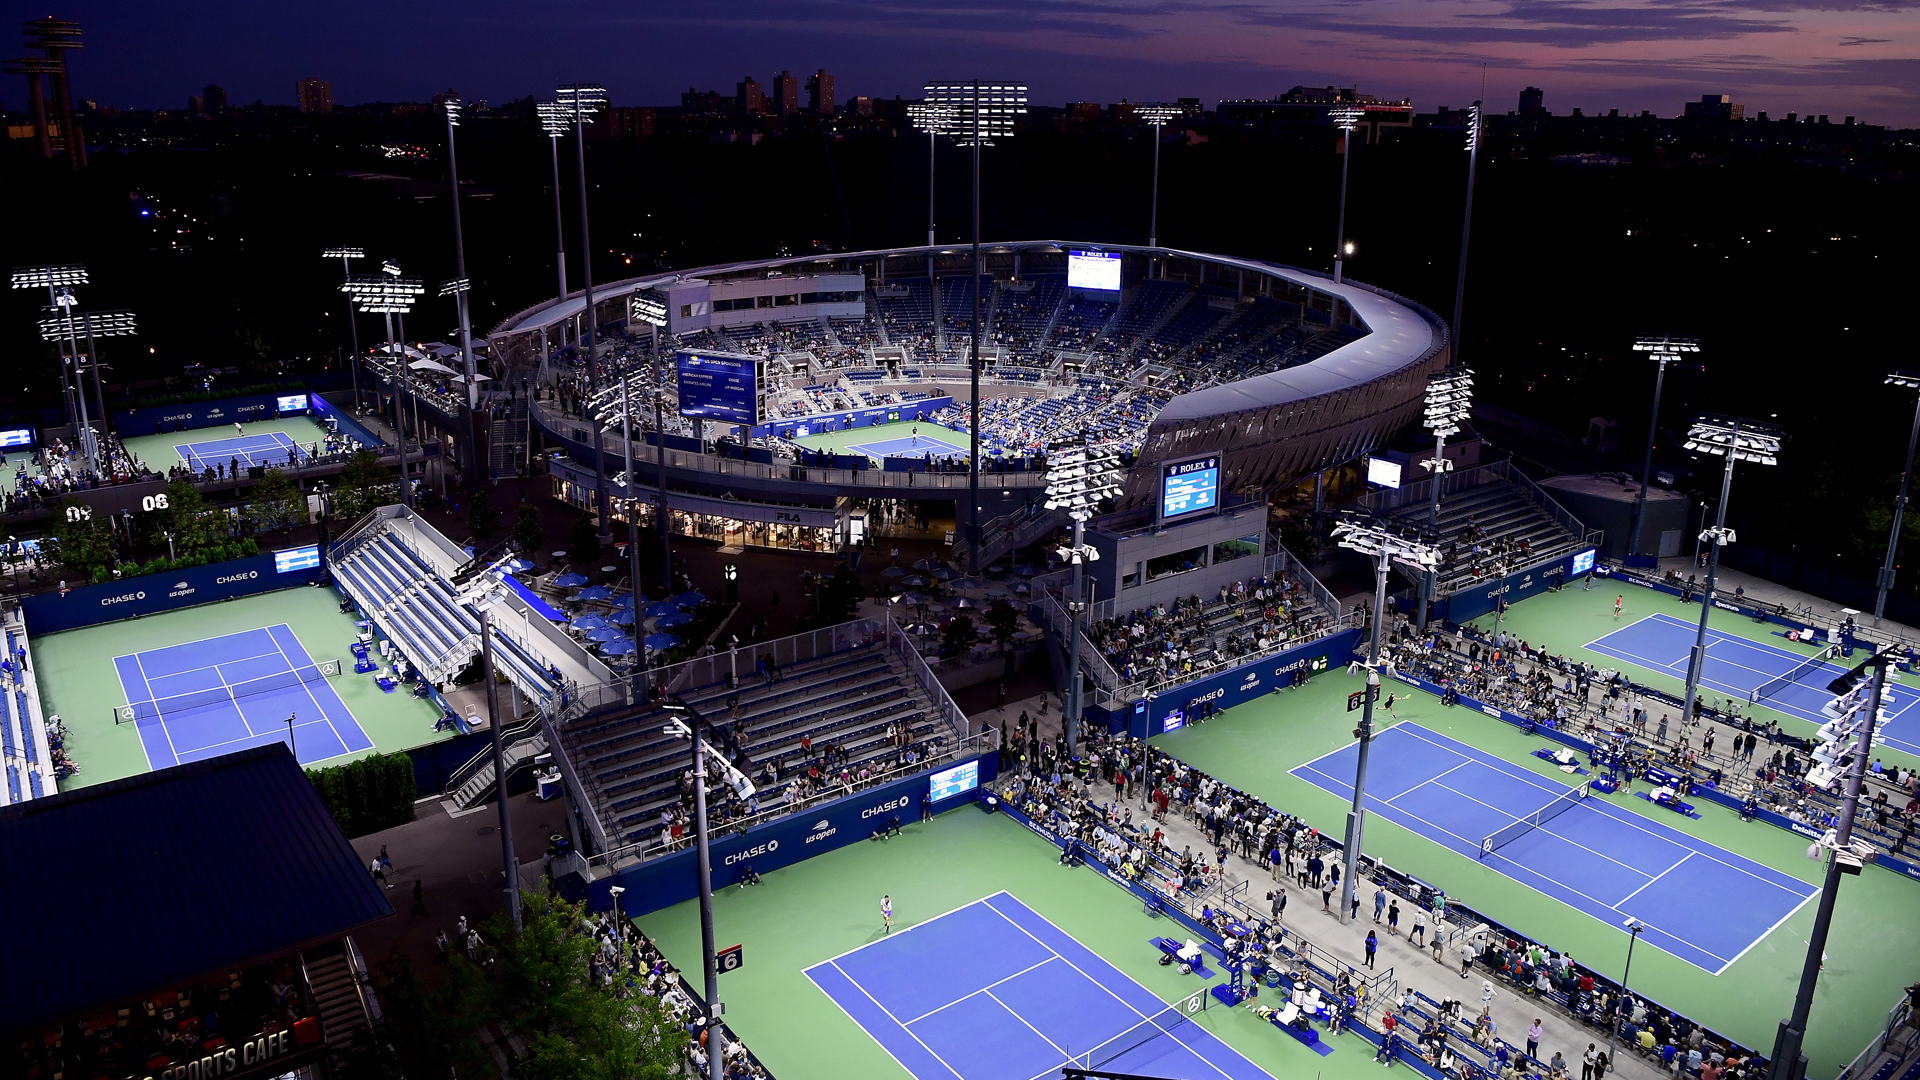 U.S. Open preparing to go ahead as scheduled, appears to criticize French Open